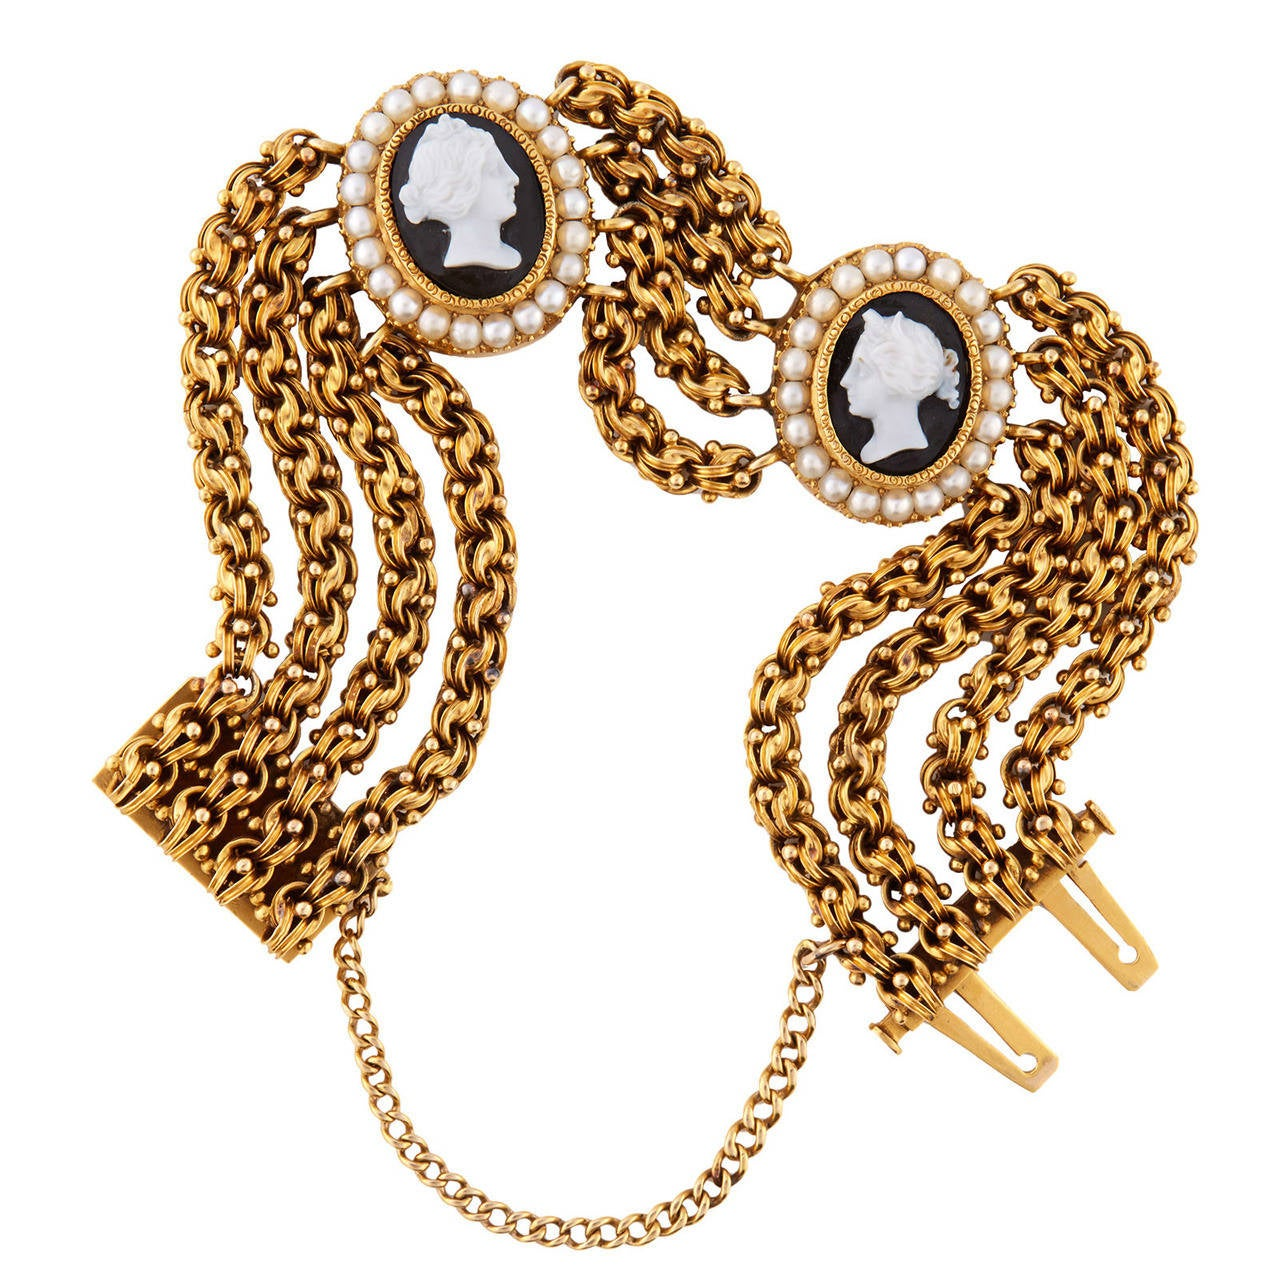 Multi-Strand Onyx Pearl Gold Cameo Chain Bracelet For Sale